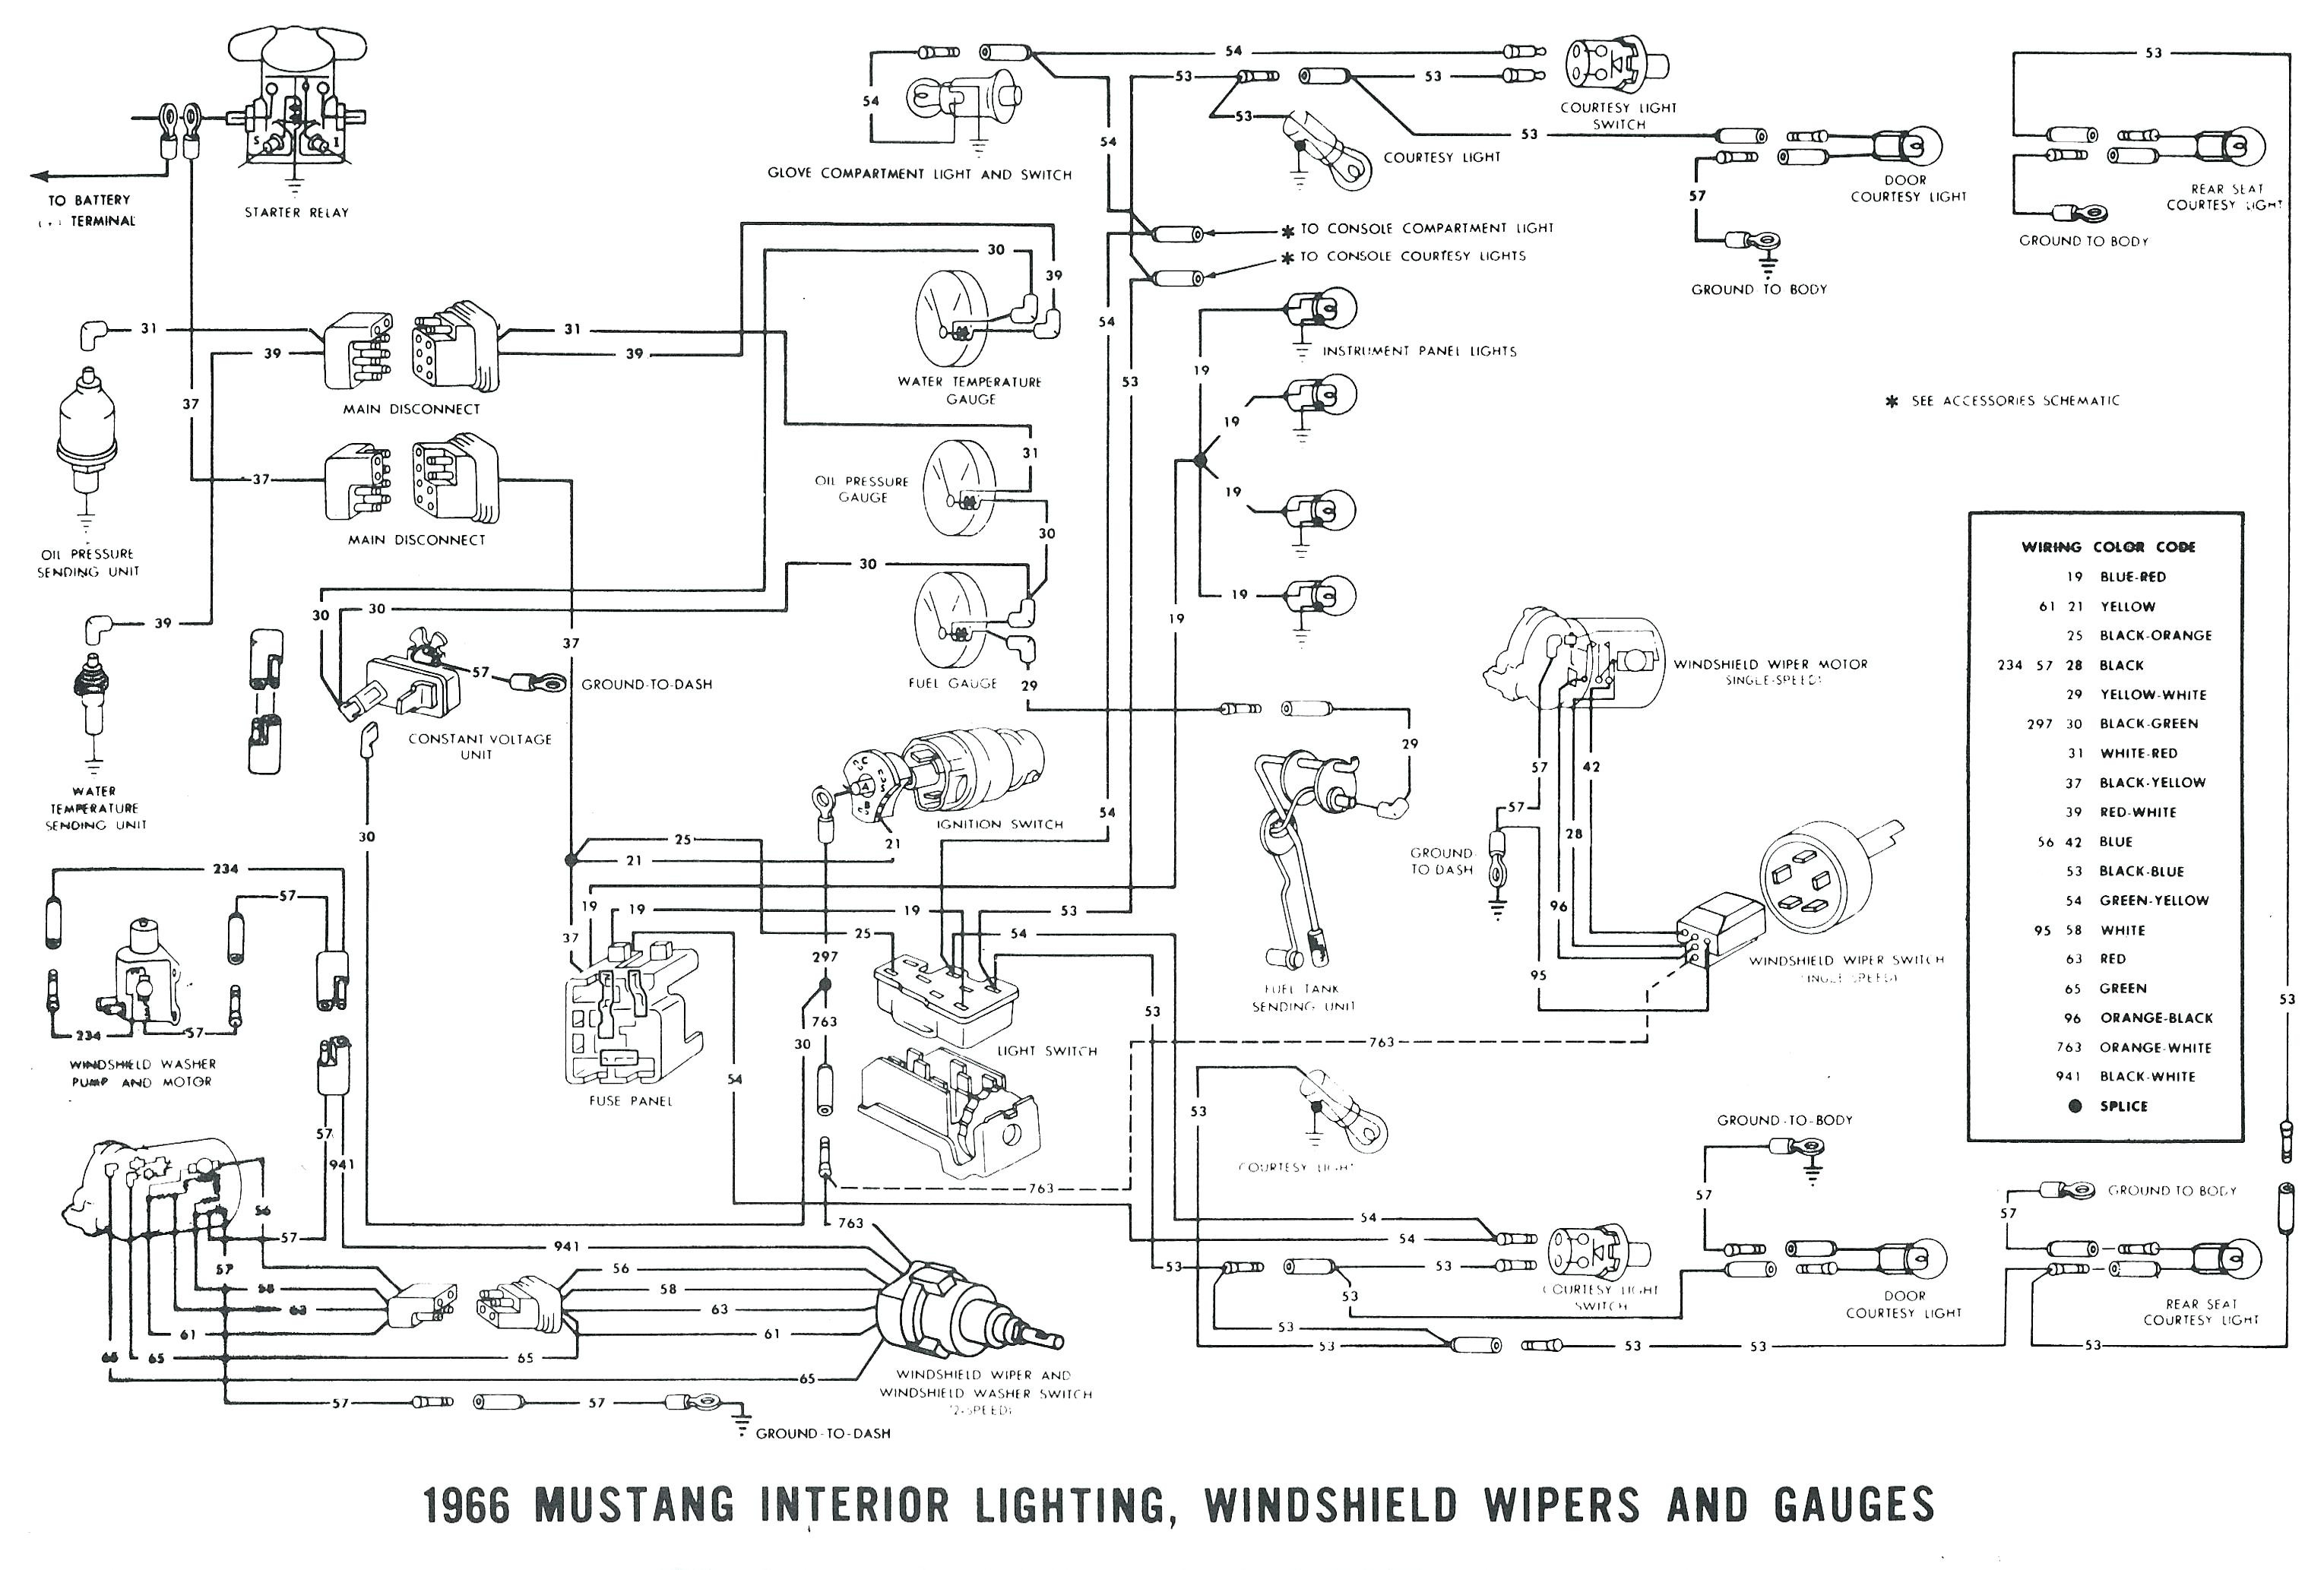 1968 Mustang Wiring Diagram 1990 ford Mustang Alternator Wiring ...